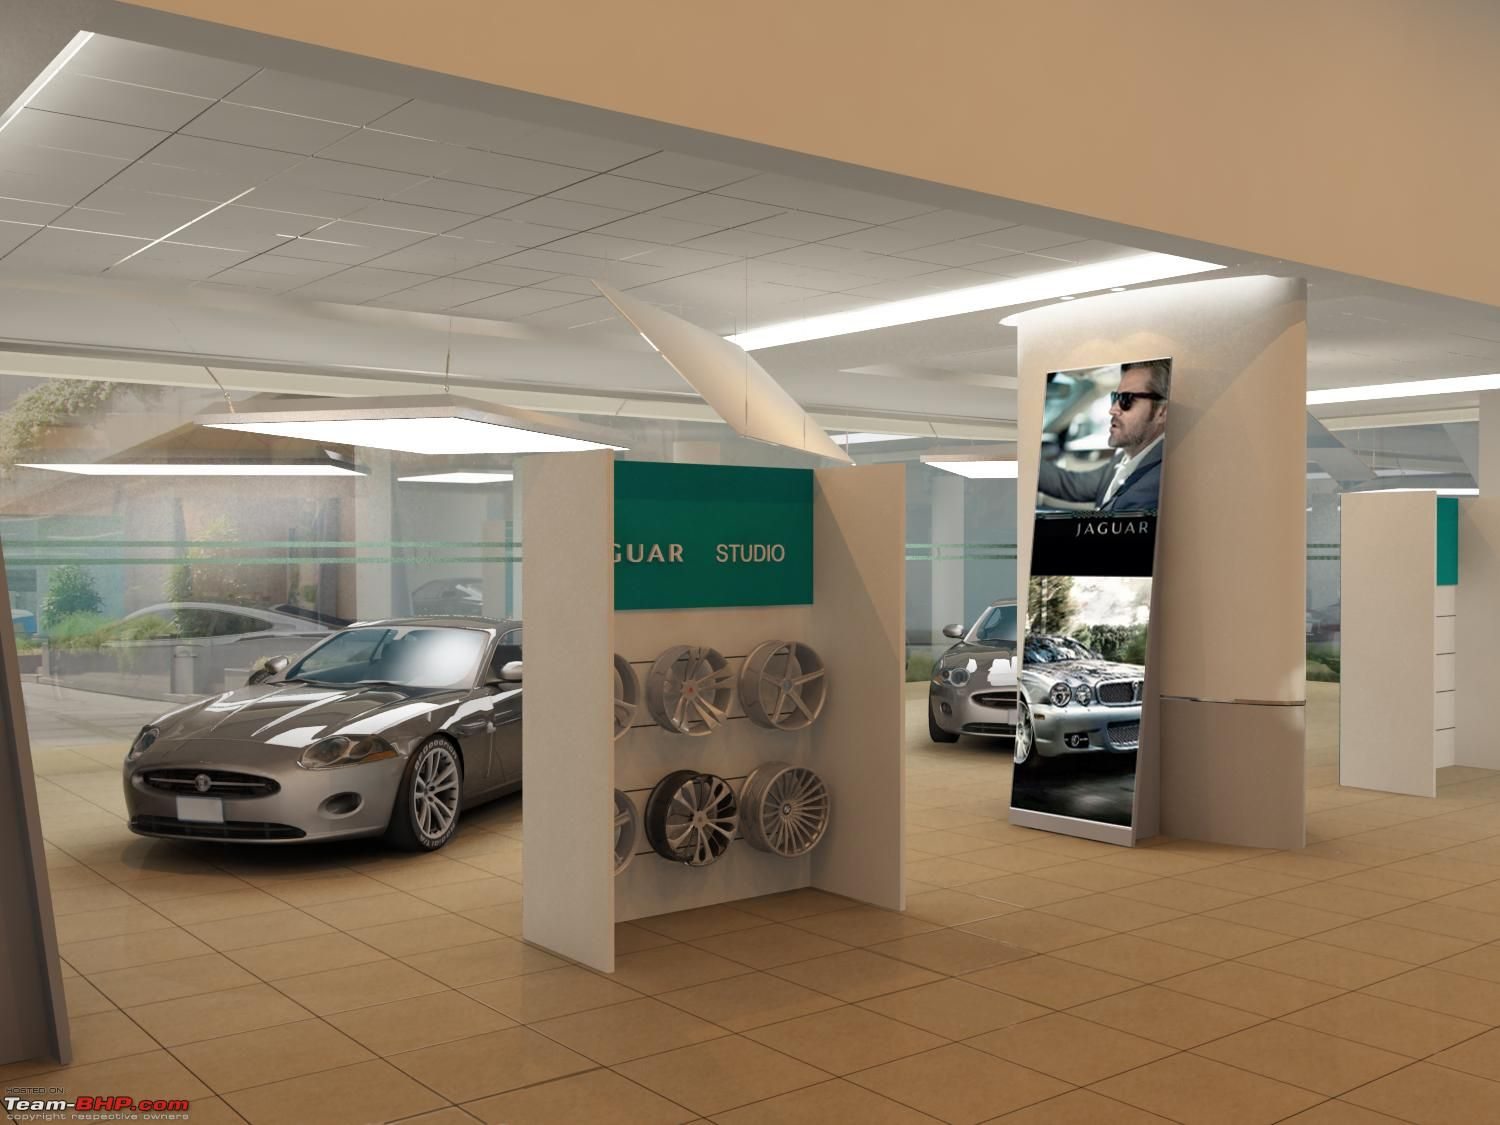 jaguar land rover showroom. jeep concept, jaguar, showroom, cheetah jaguar land rover showroom o